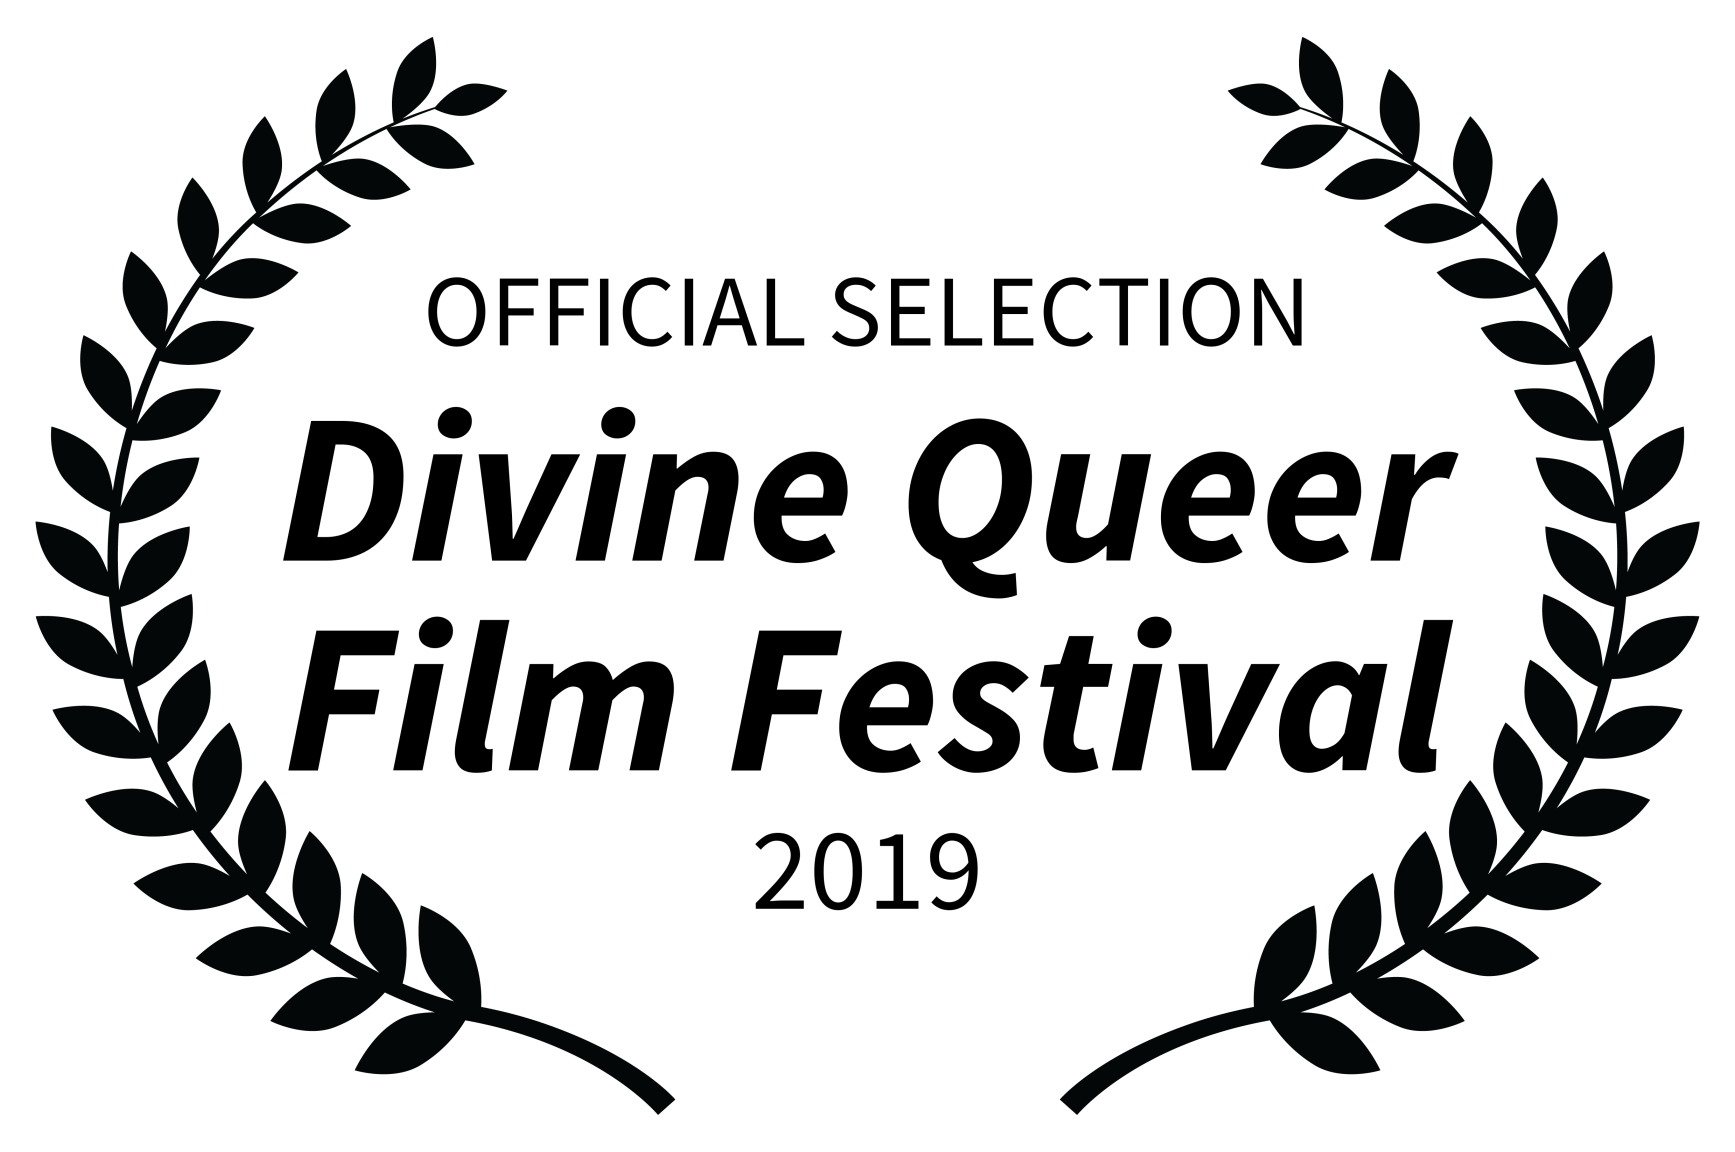 OFFICIAL SELECTION - Divine Queer Film Festival - 2019